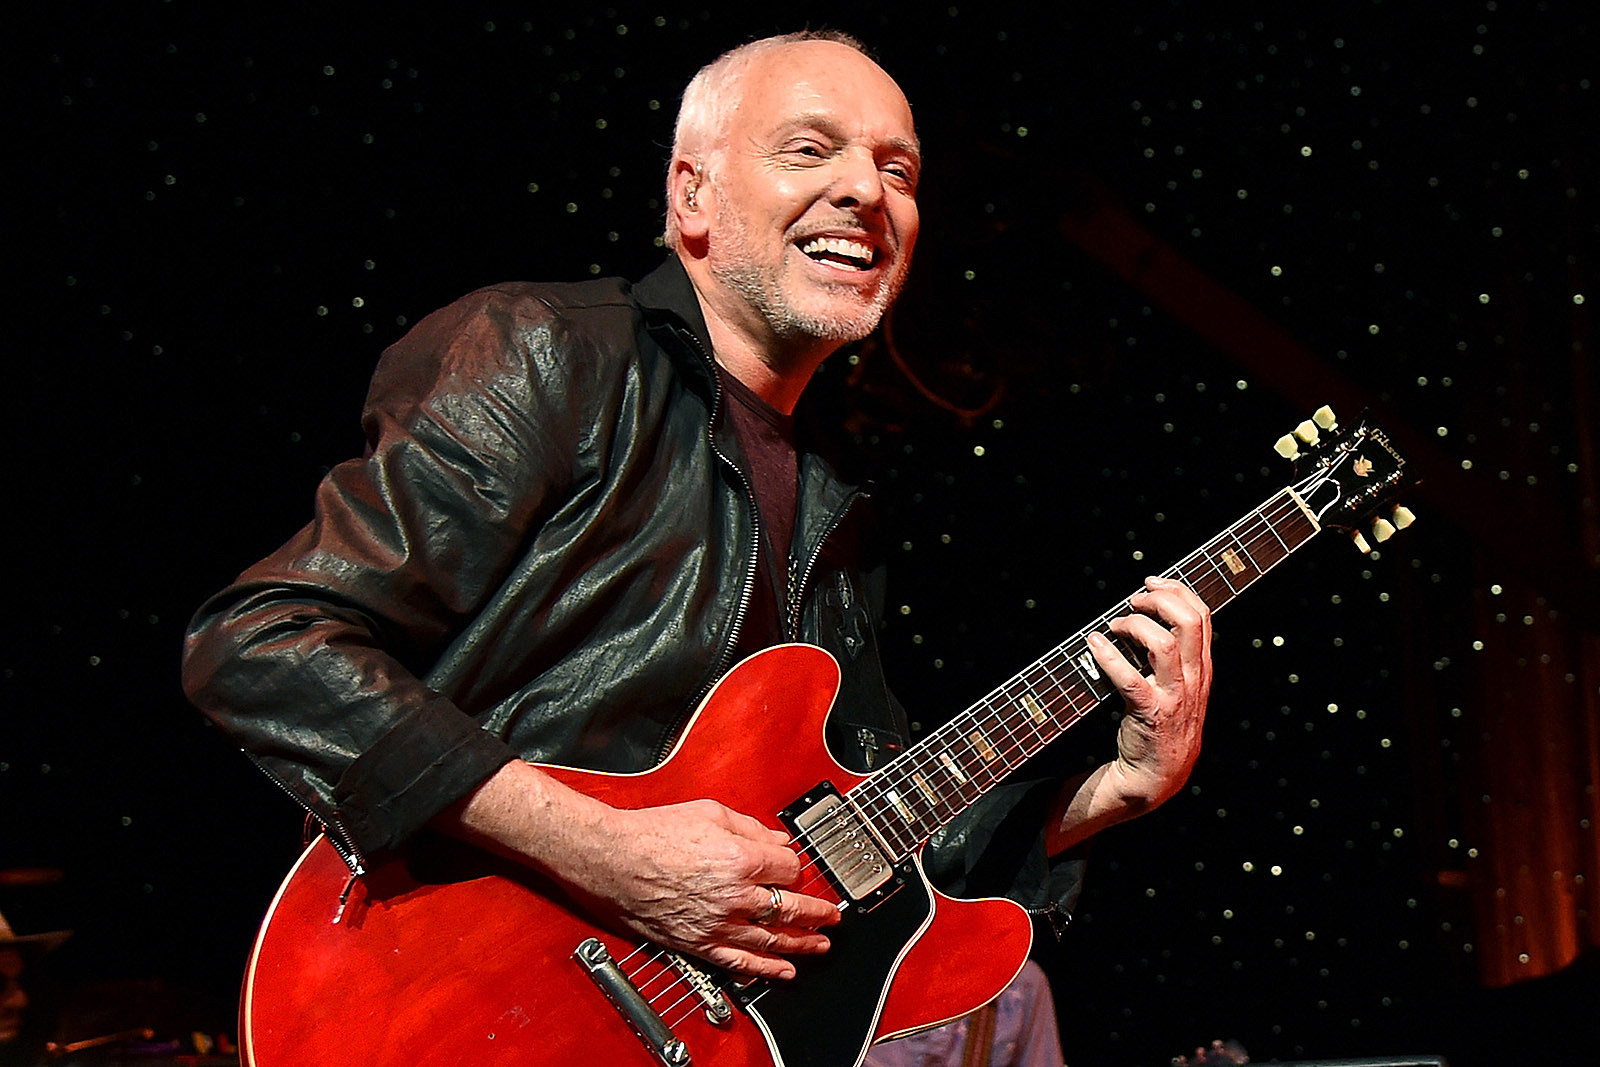 Peter Frampton Says Manager Kept Him High to Hide Fraud